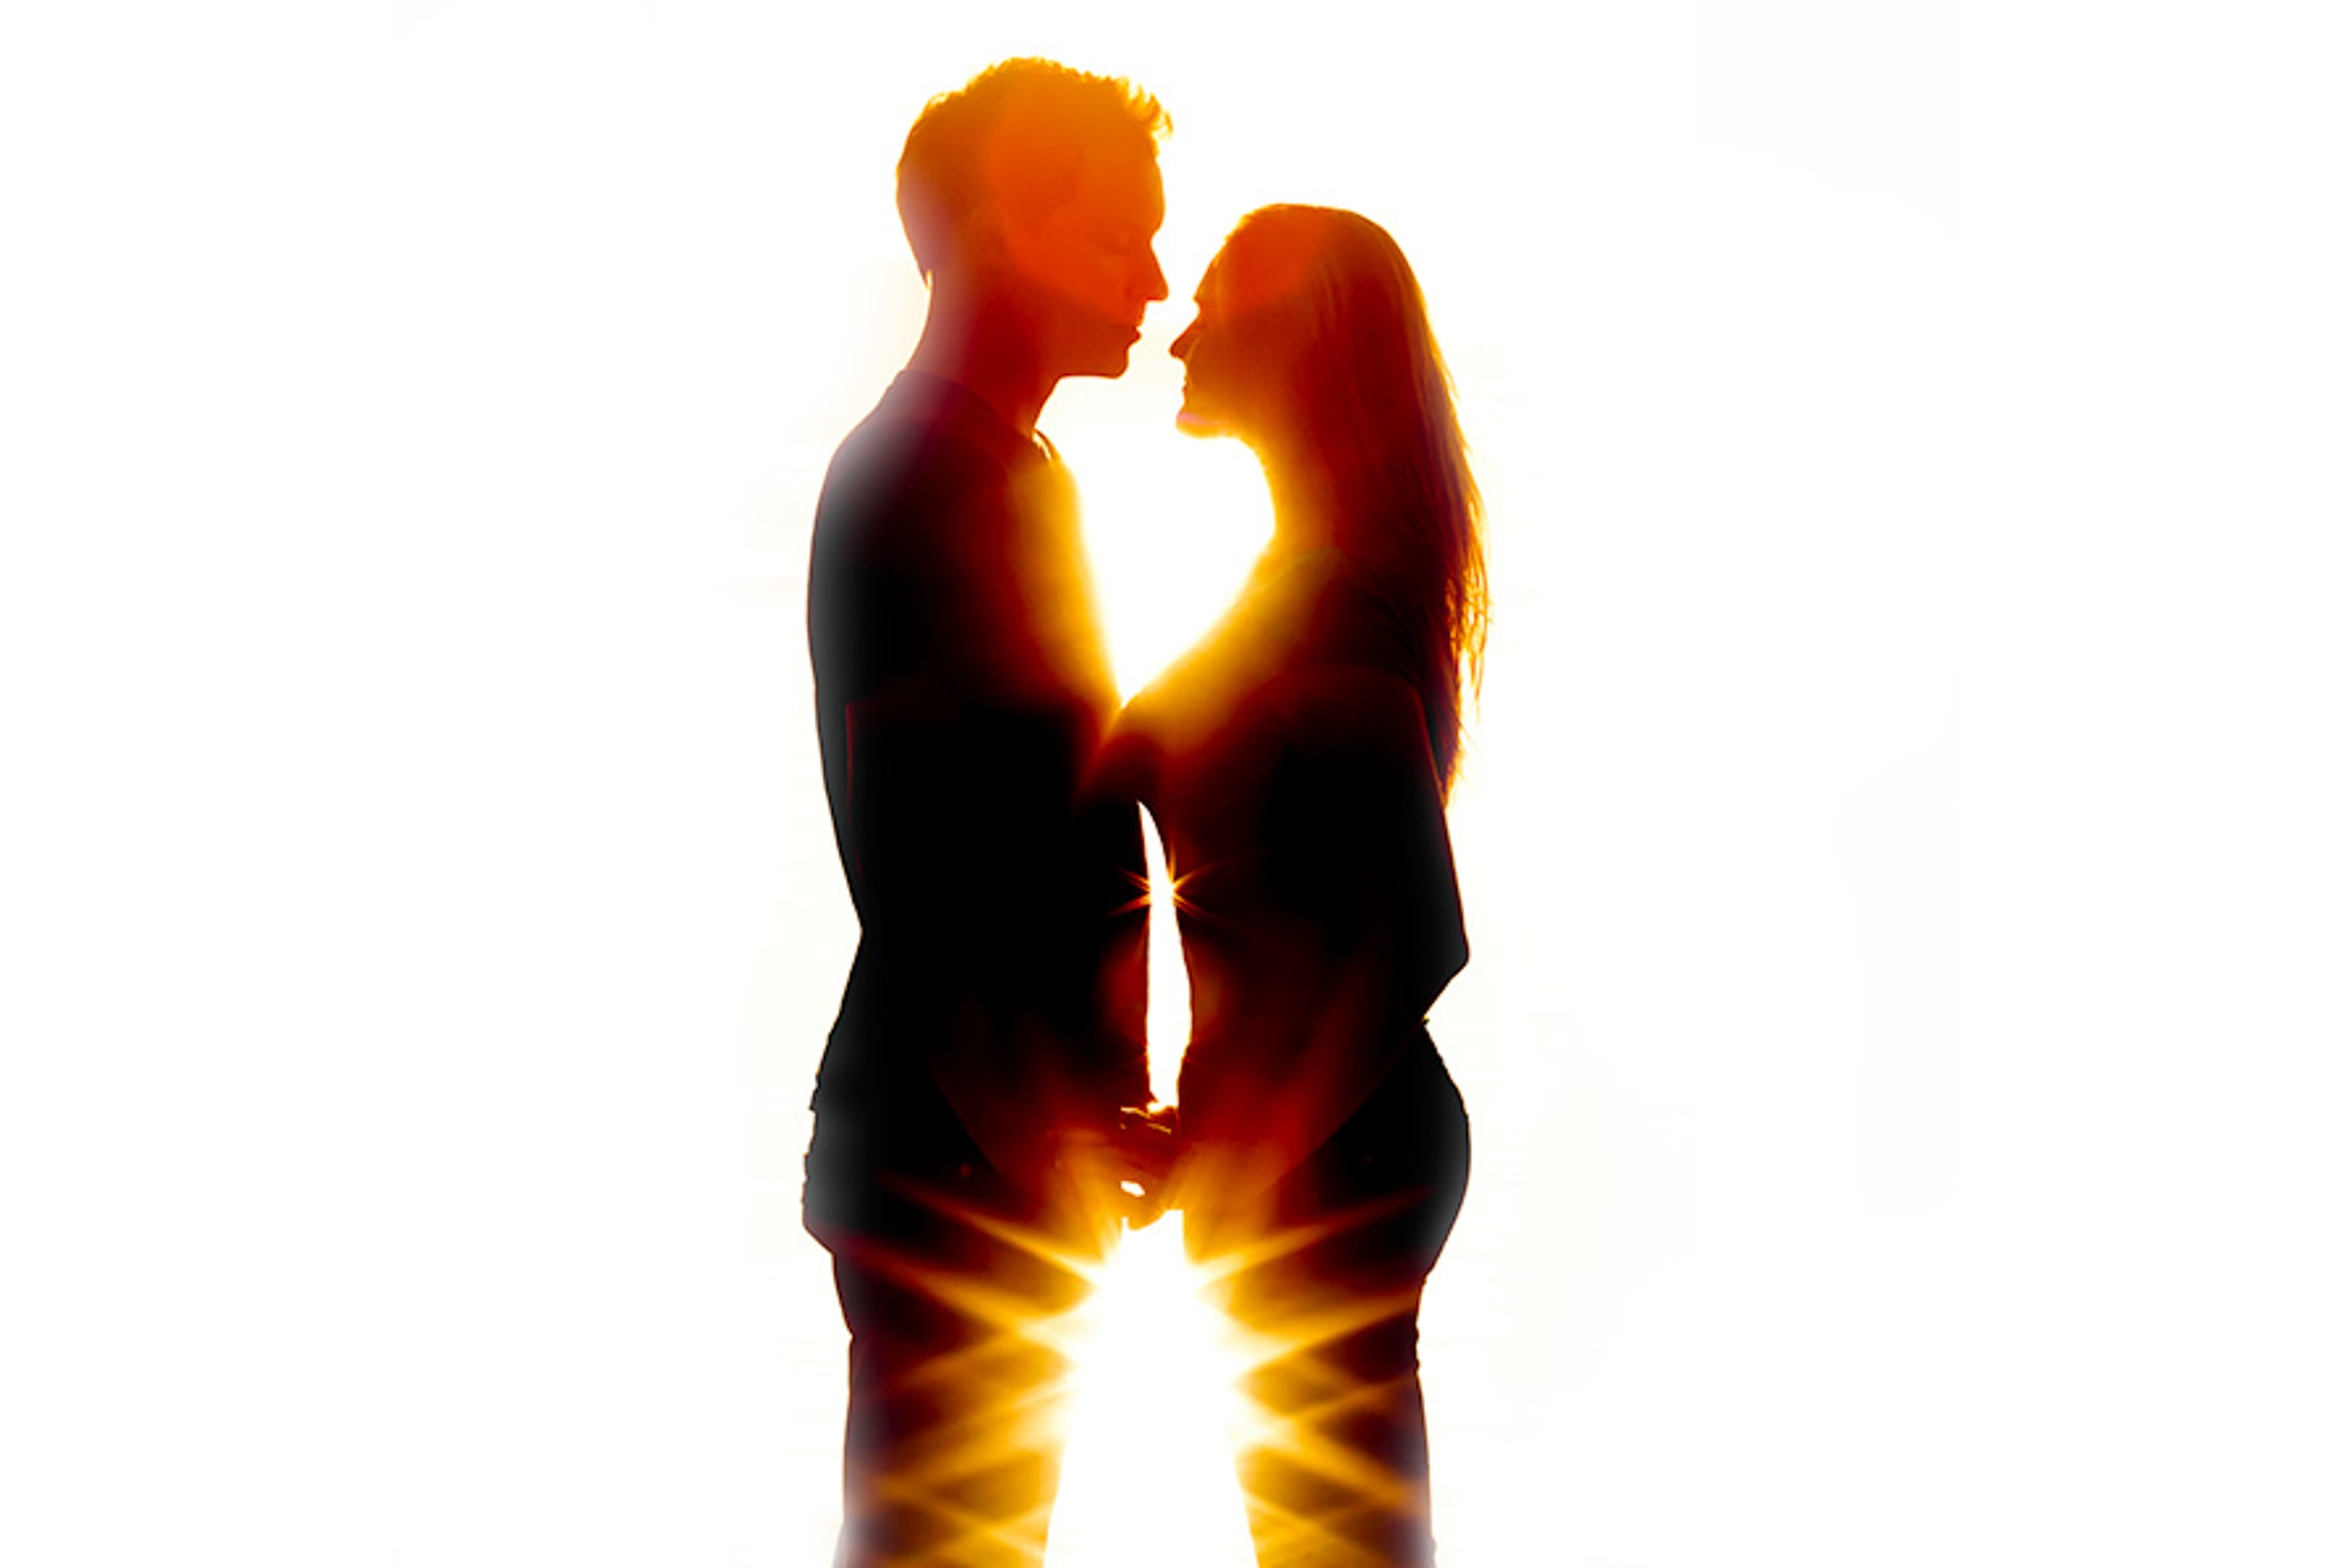 San Francisco Engagement photo of couple with sunset back light flaring around their bodies